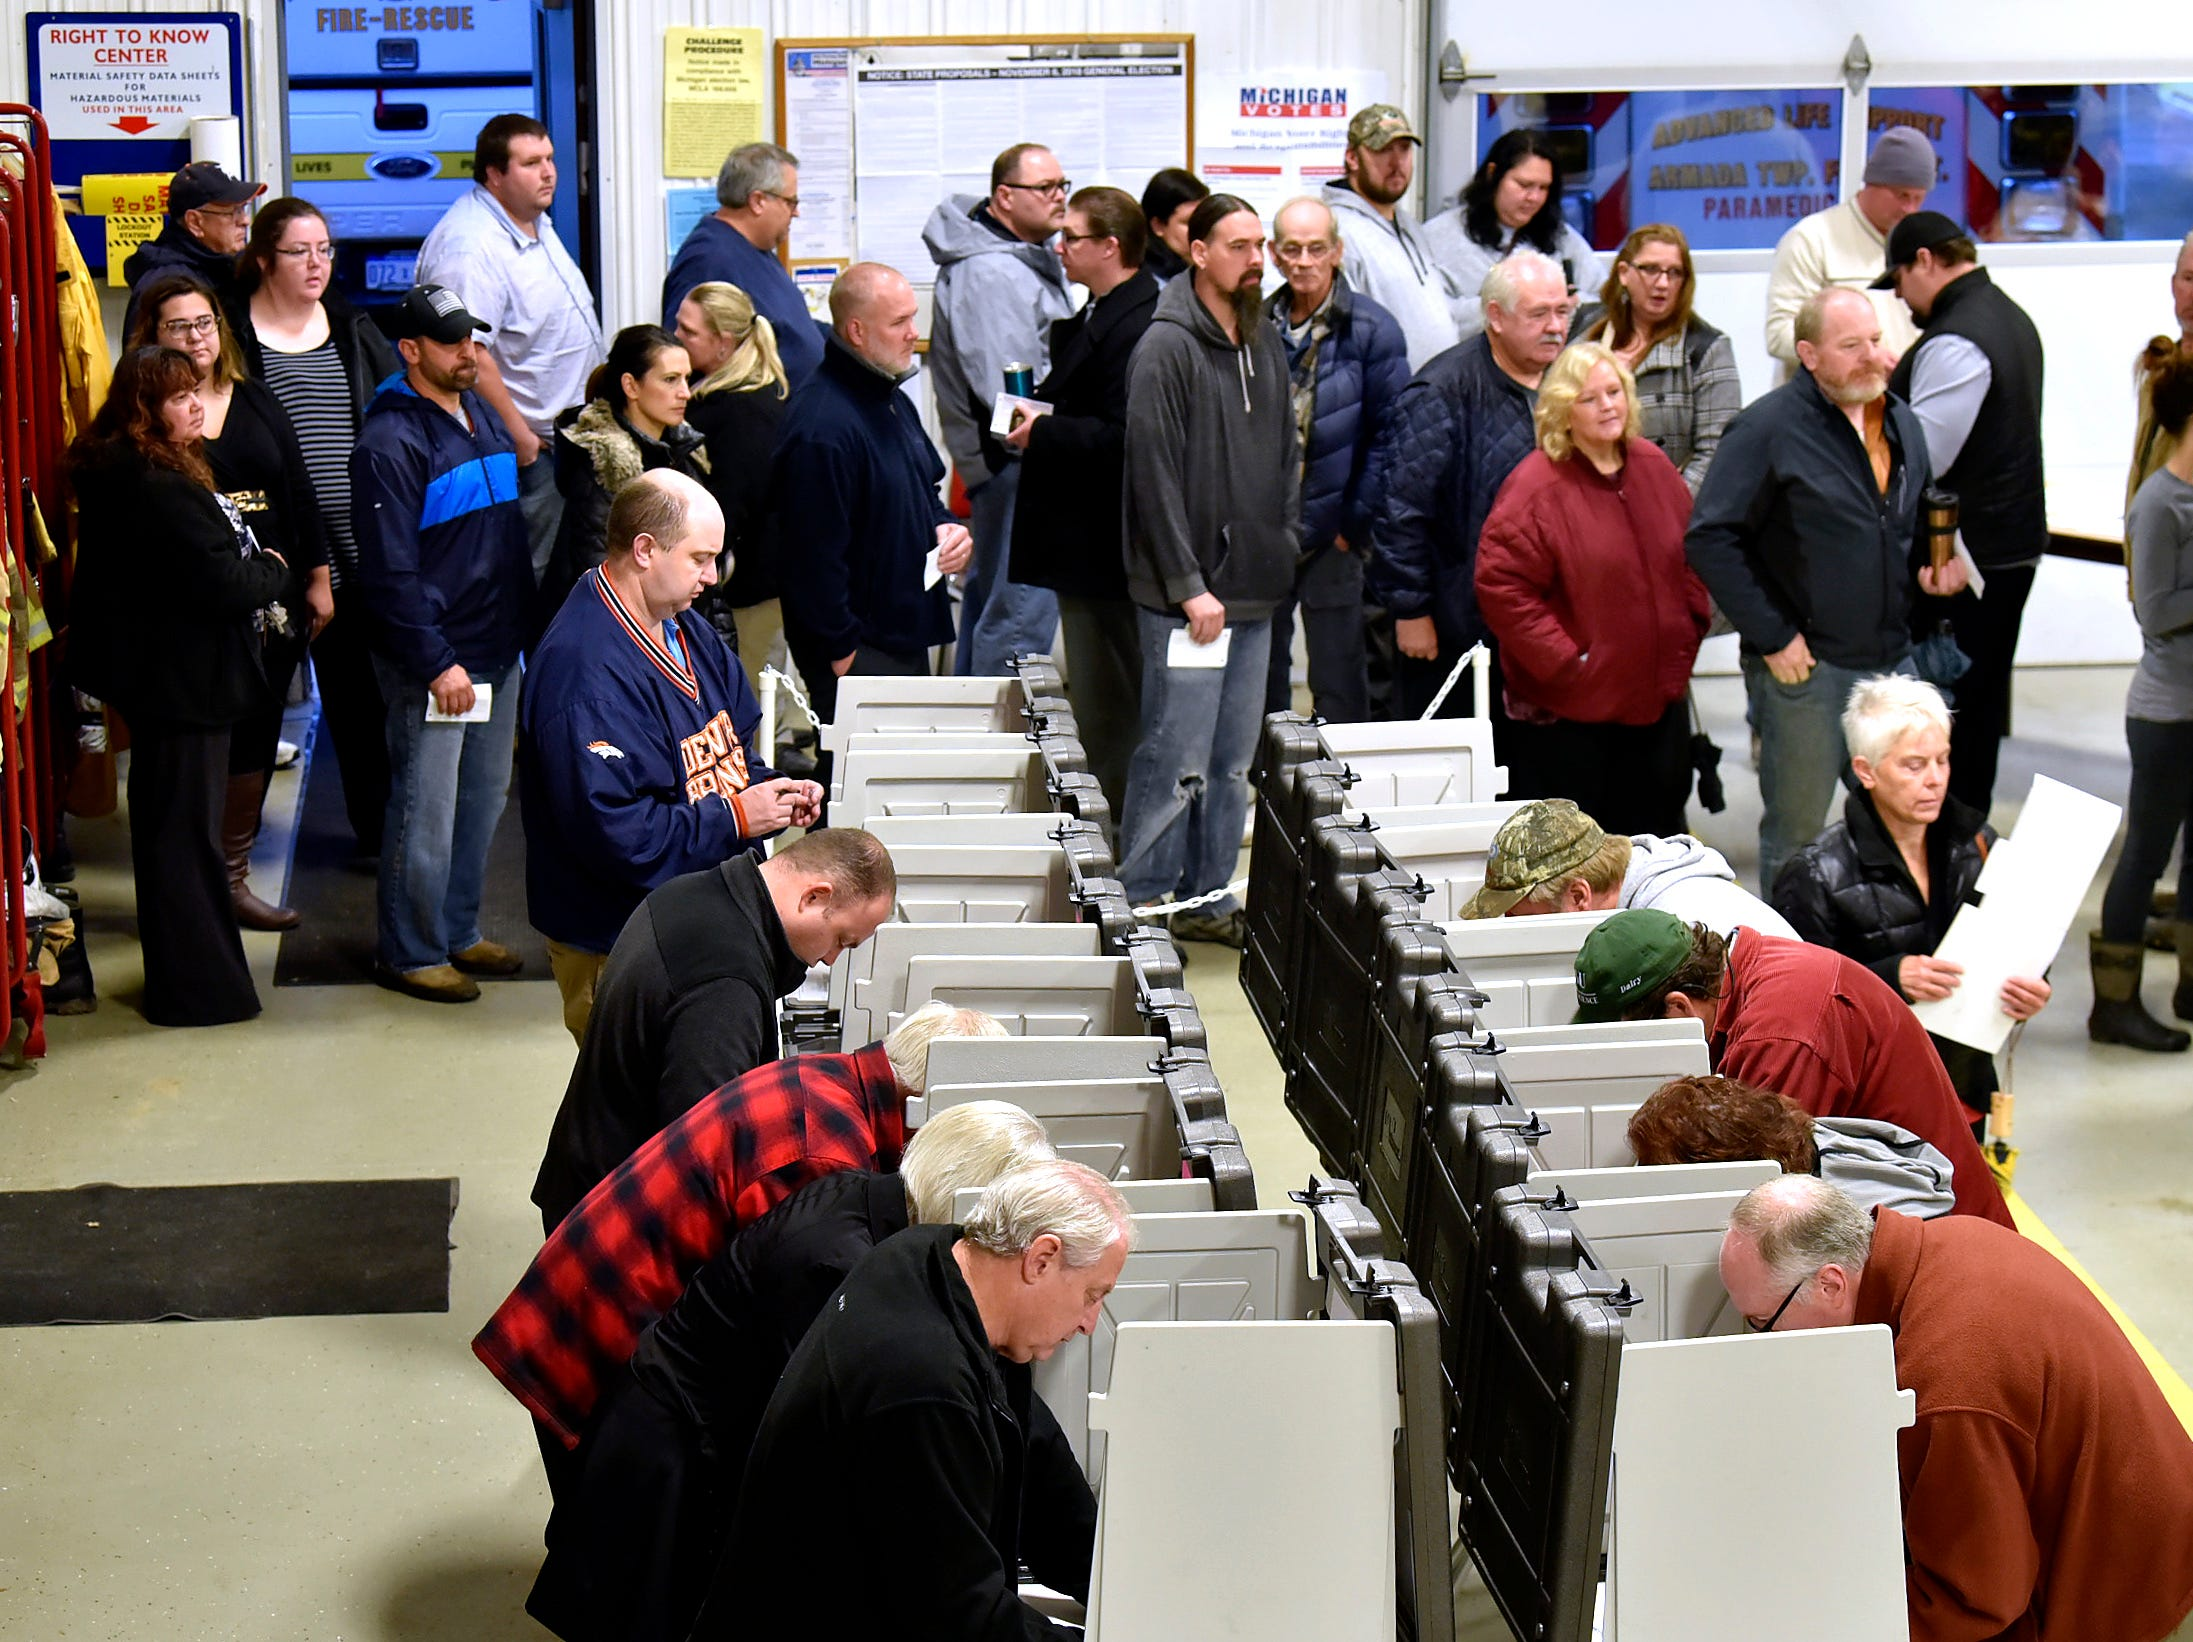 Voter lines serpentine at Precinct One inside the fire bay at the Armada Twp. Fire Department, Tuesday morning, Nov. 6, 2018. Armada Township voters are considering an increase to a Fire Protection Millage, which would provide additional funding for new fire trucks and firefighting equipment.